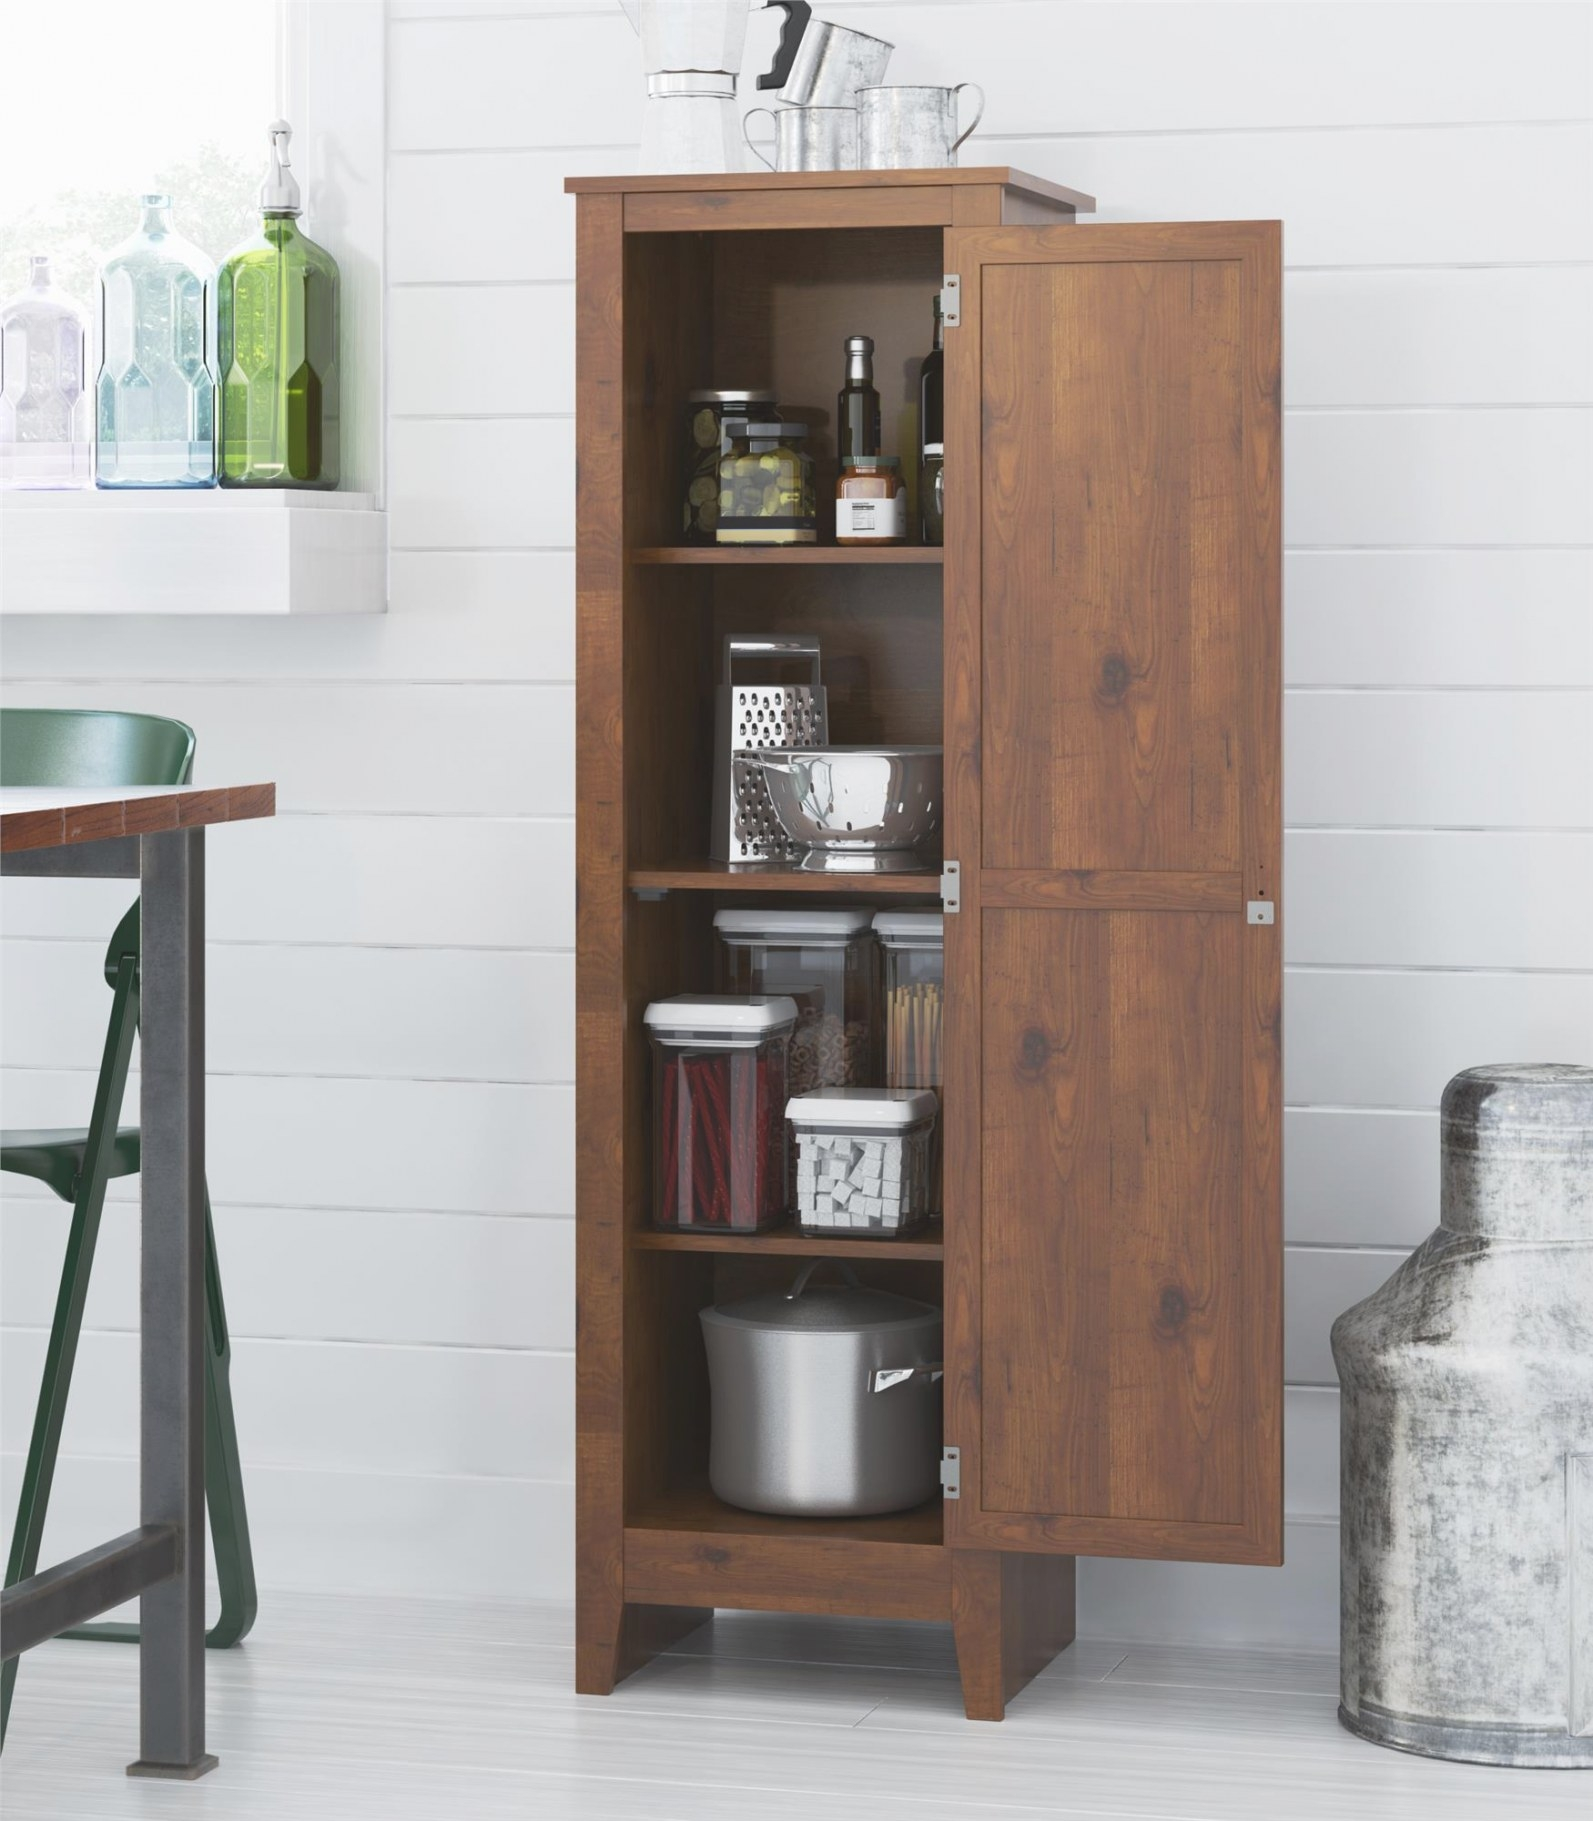 Rustic Single Door Storage Pantry Cabinet Organizer throughout Kitchen Pantry Storage Cabinet